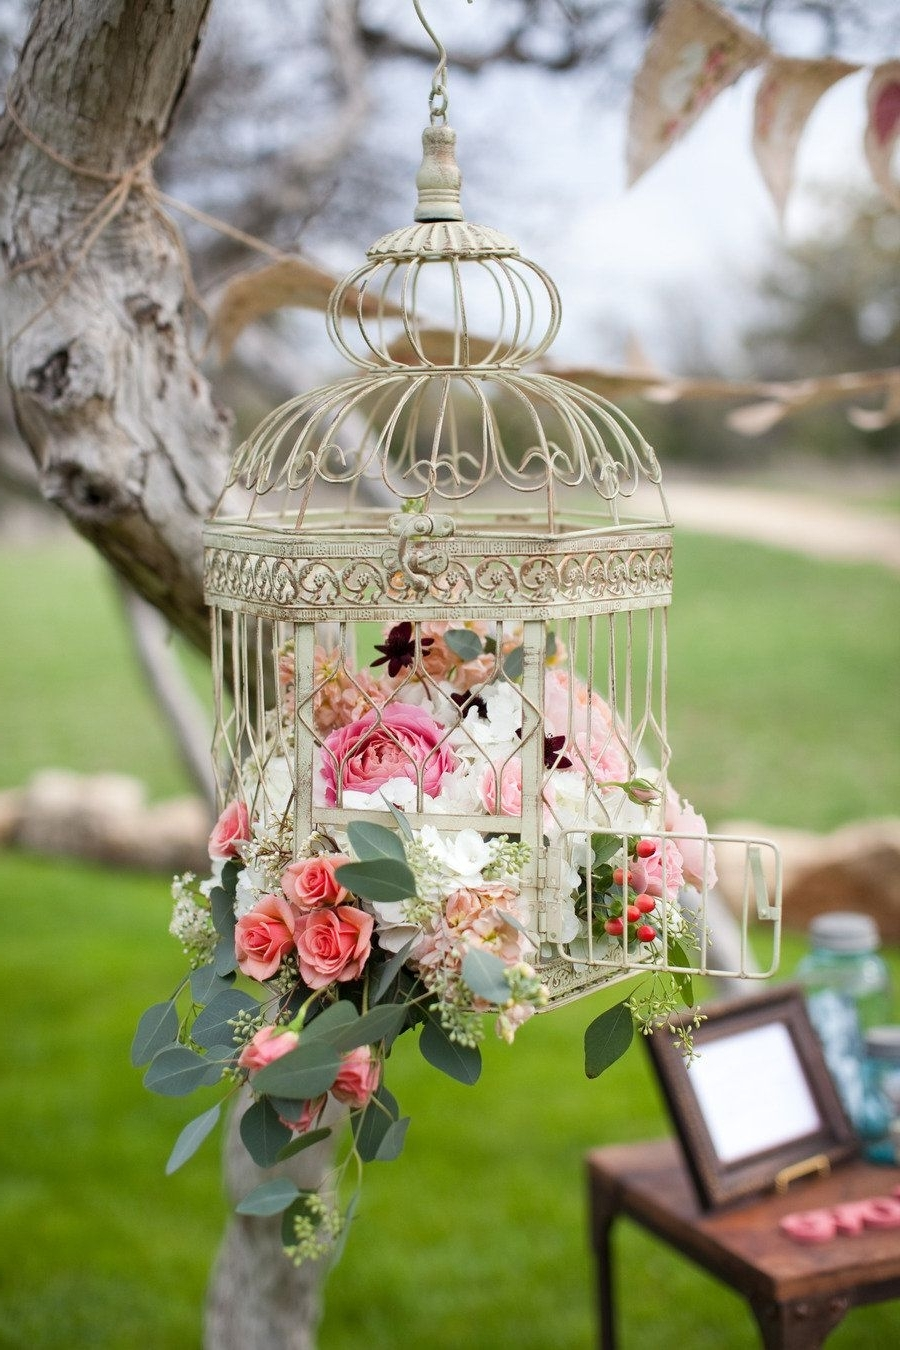 Favorite Outdoor Hanging Lanterns For Wedding Within Vista West Ranch Weddingnicole Chatham Photography (View 9 of 20)